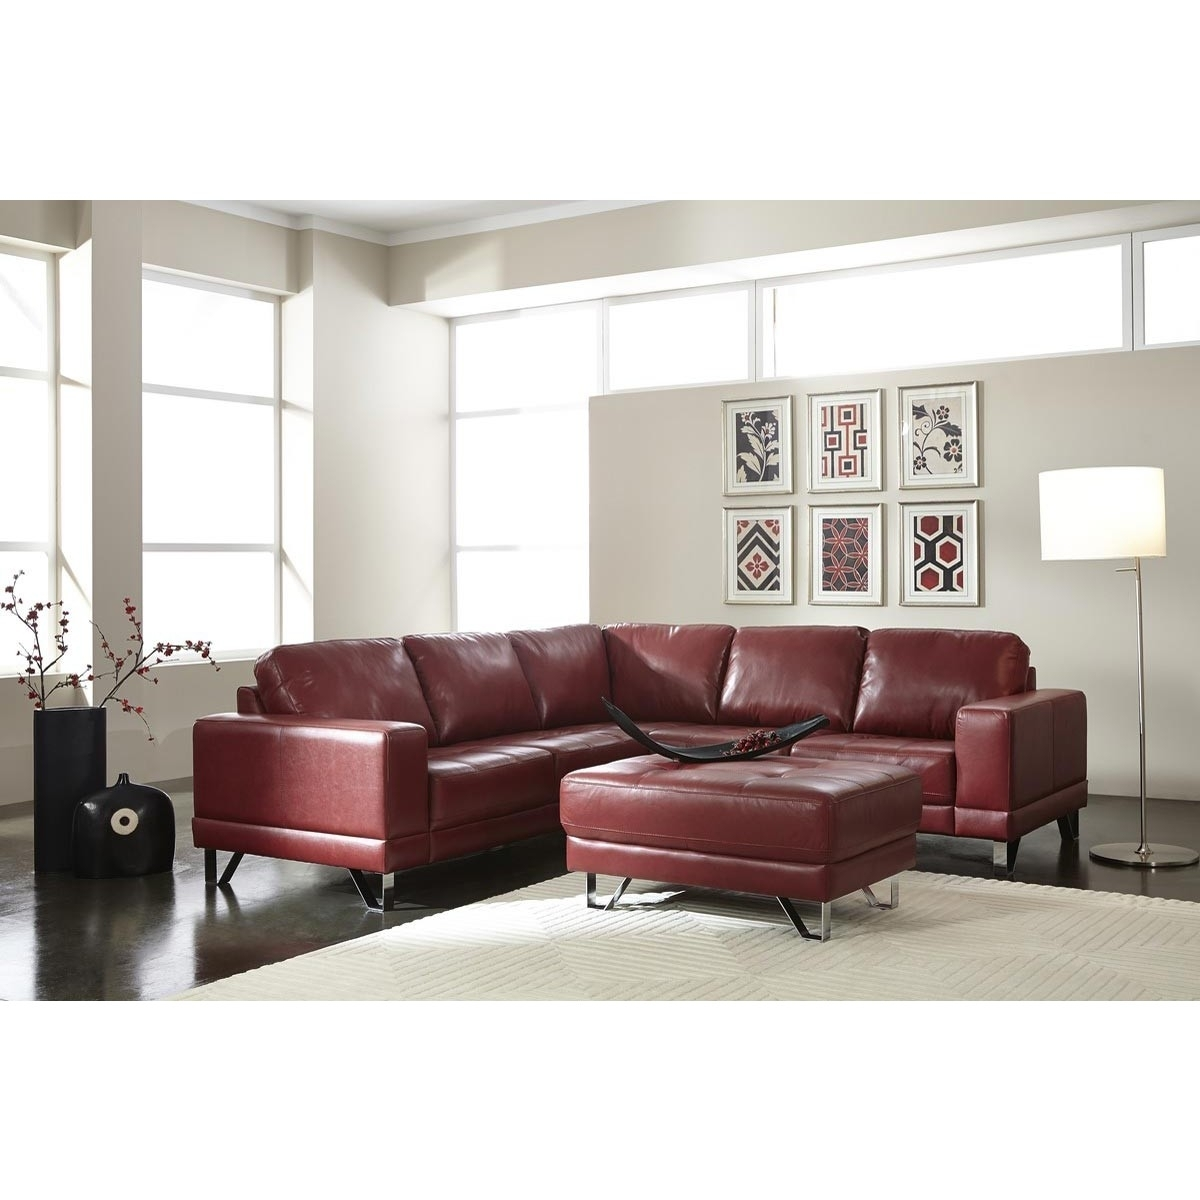 Palliser Seattle Sectional From $1,768.00Palliser | Danco Modern with regard to Seattle Sectional Sofas (Image 5 of 10)